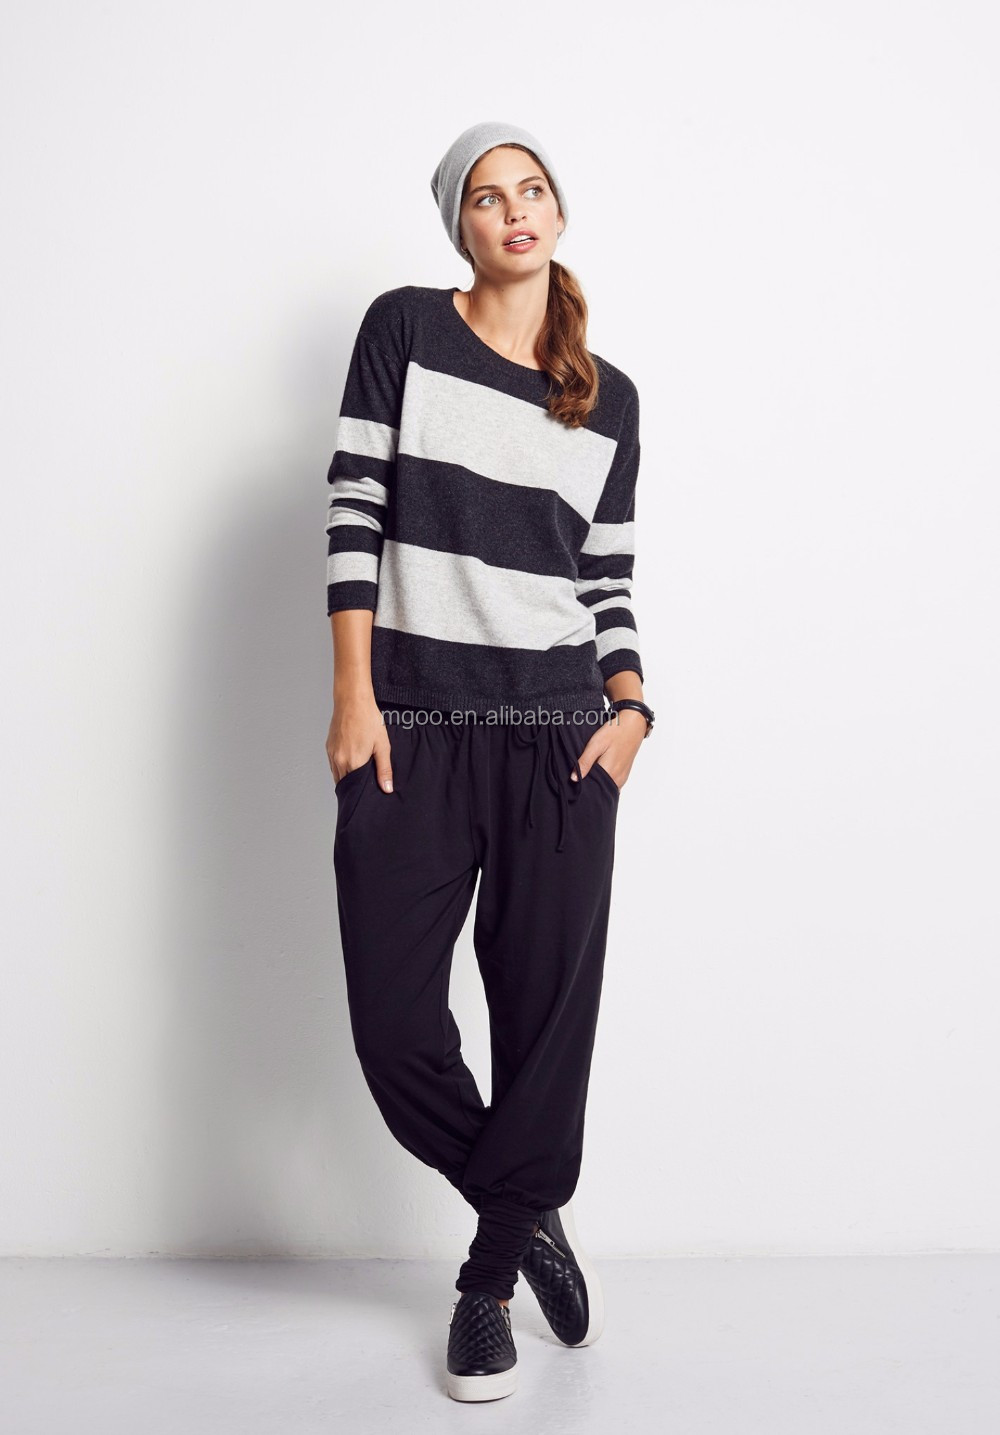 ae3c3b7ca Ladies Knitwear Plus Size Custom Own Logo Mixed Colors Sweaters Last Design  Cable Knit Dress